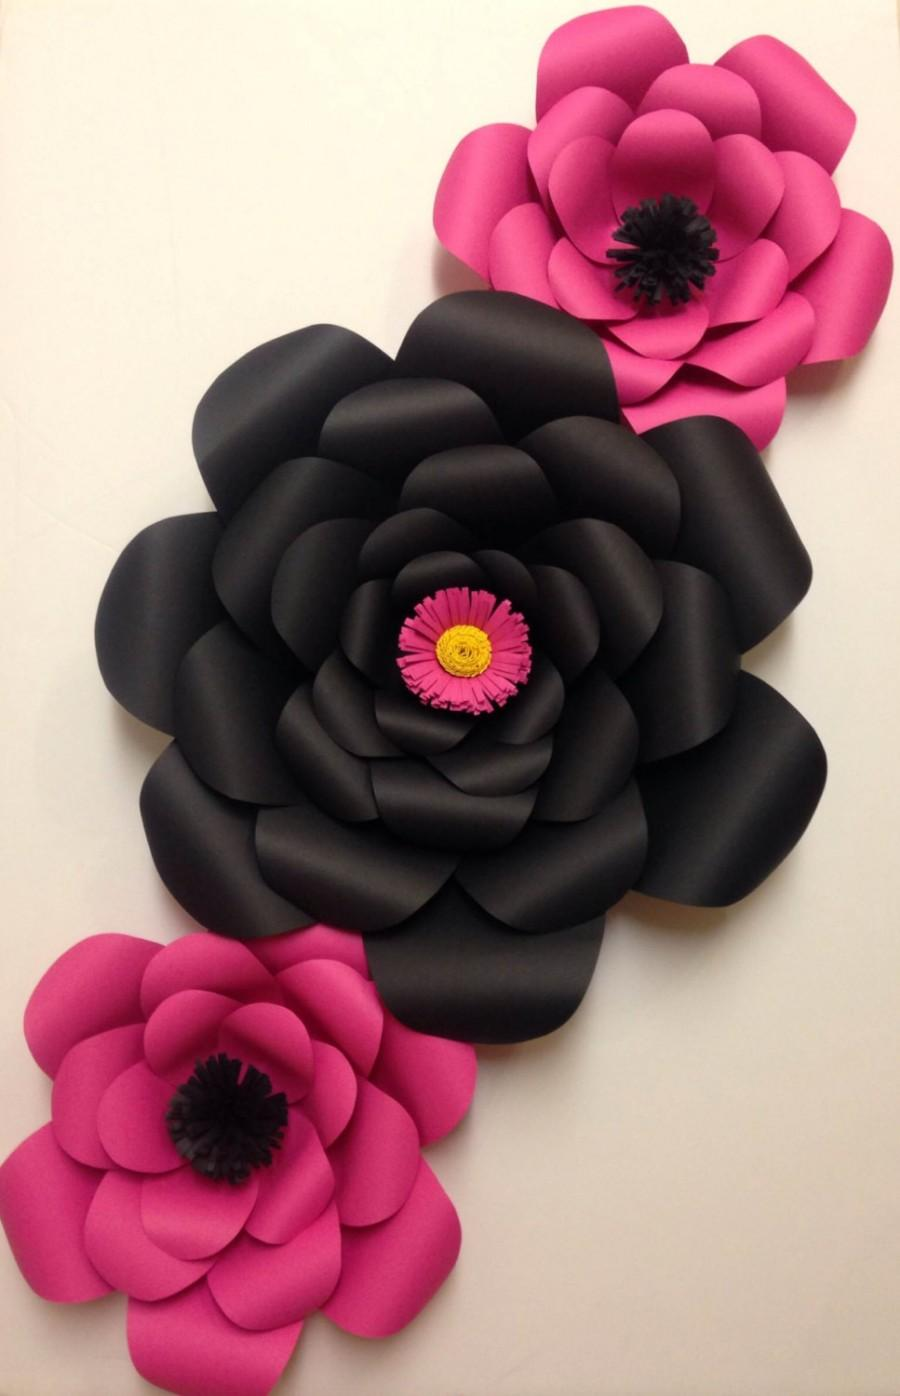 Wedding - Kate Spade Inspired Paper Flower Set - Kate Spade, bridal shower, bachelorette party, room decor